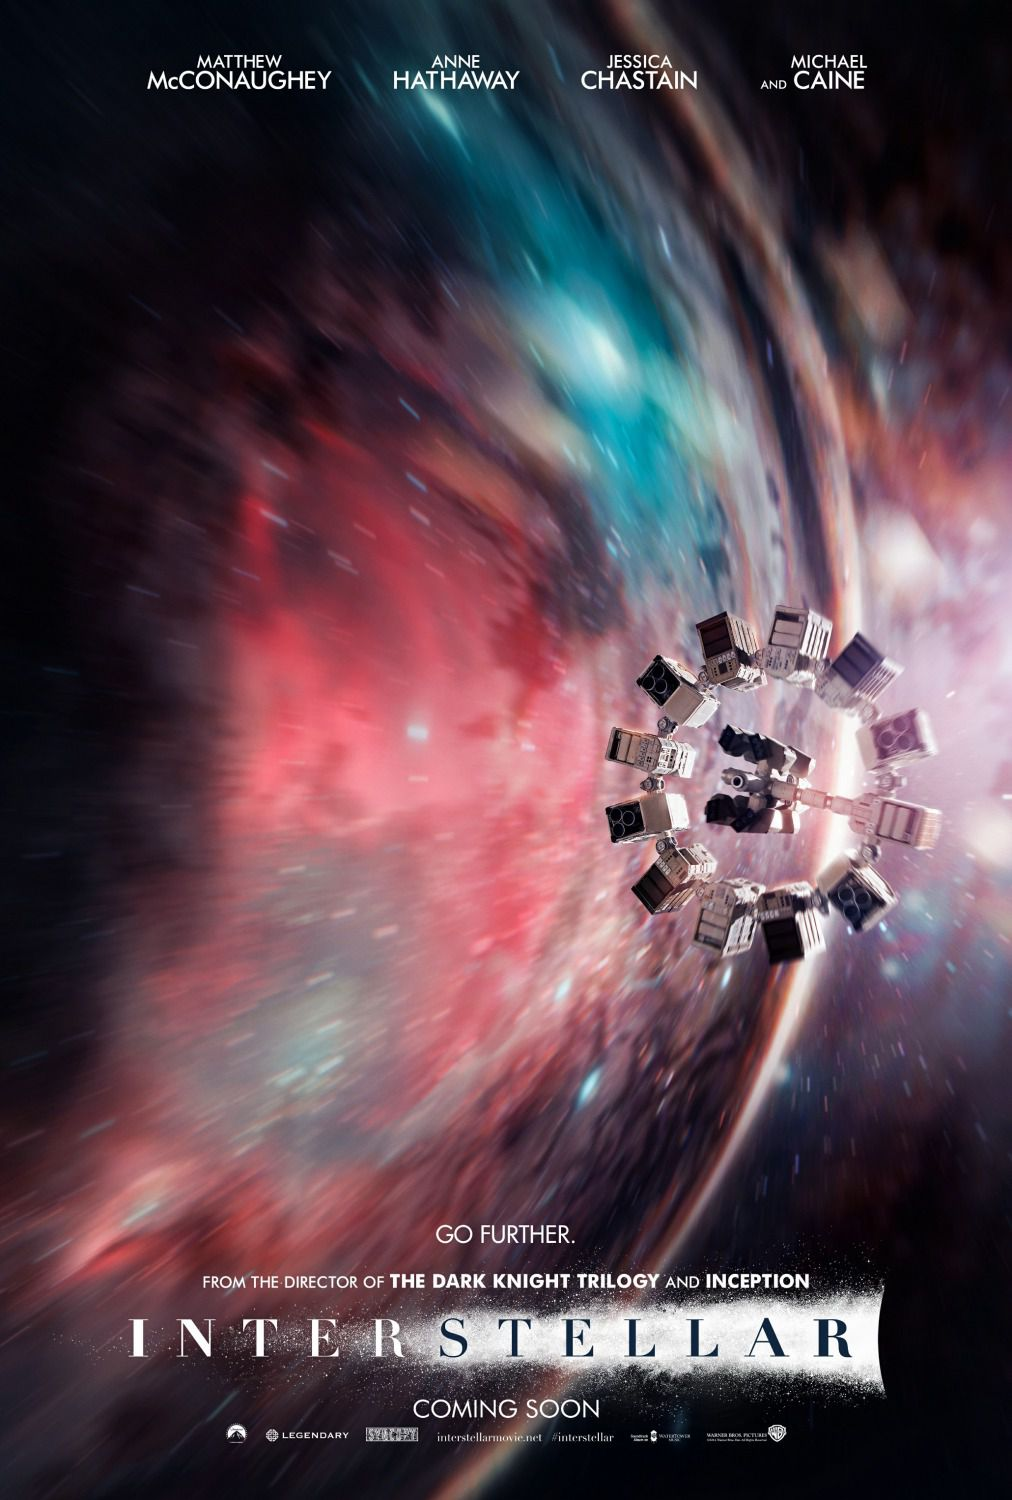 Interstellar - poster - space station